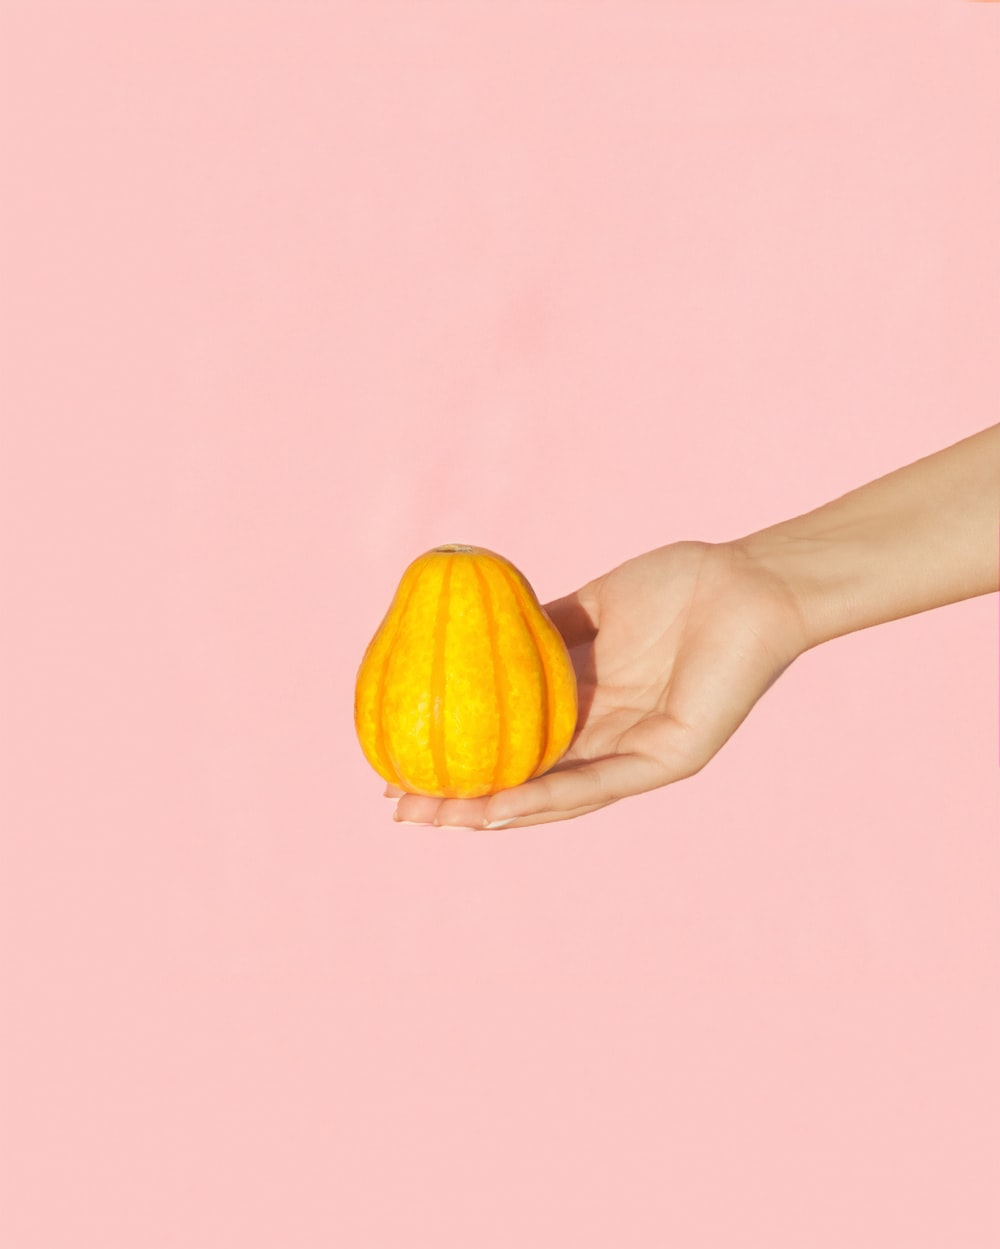 pear-shaped yellow fruit on person's palm